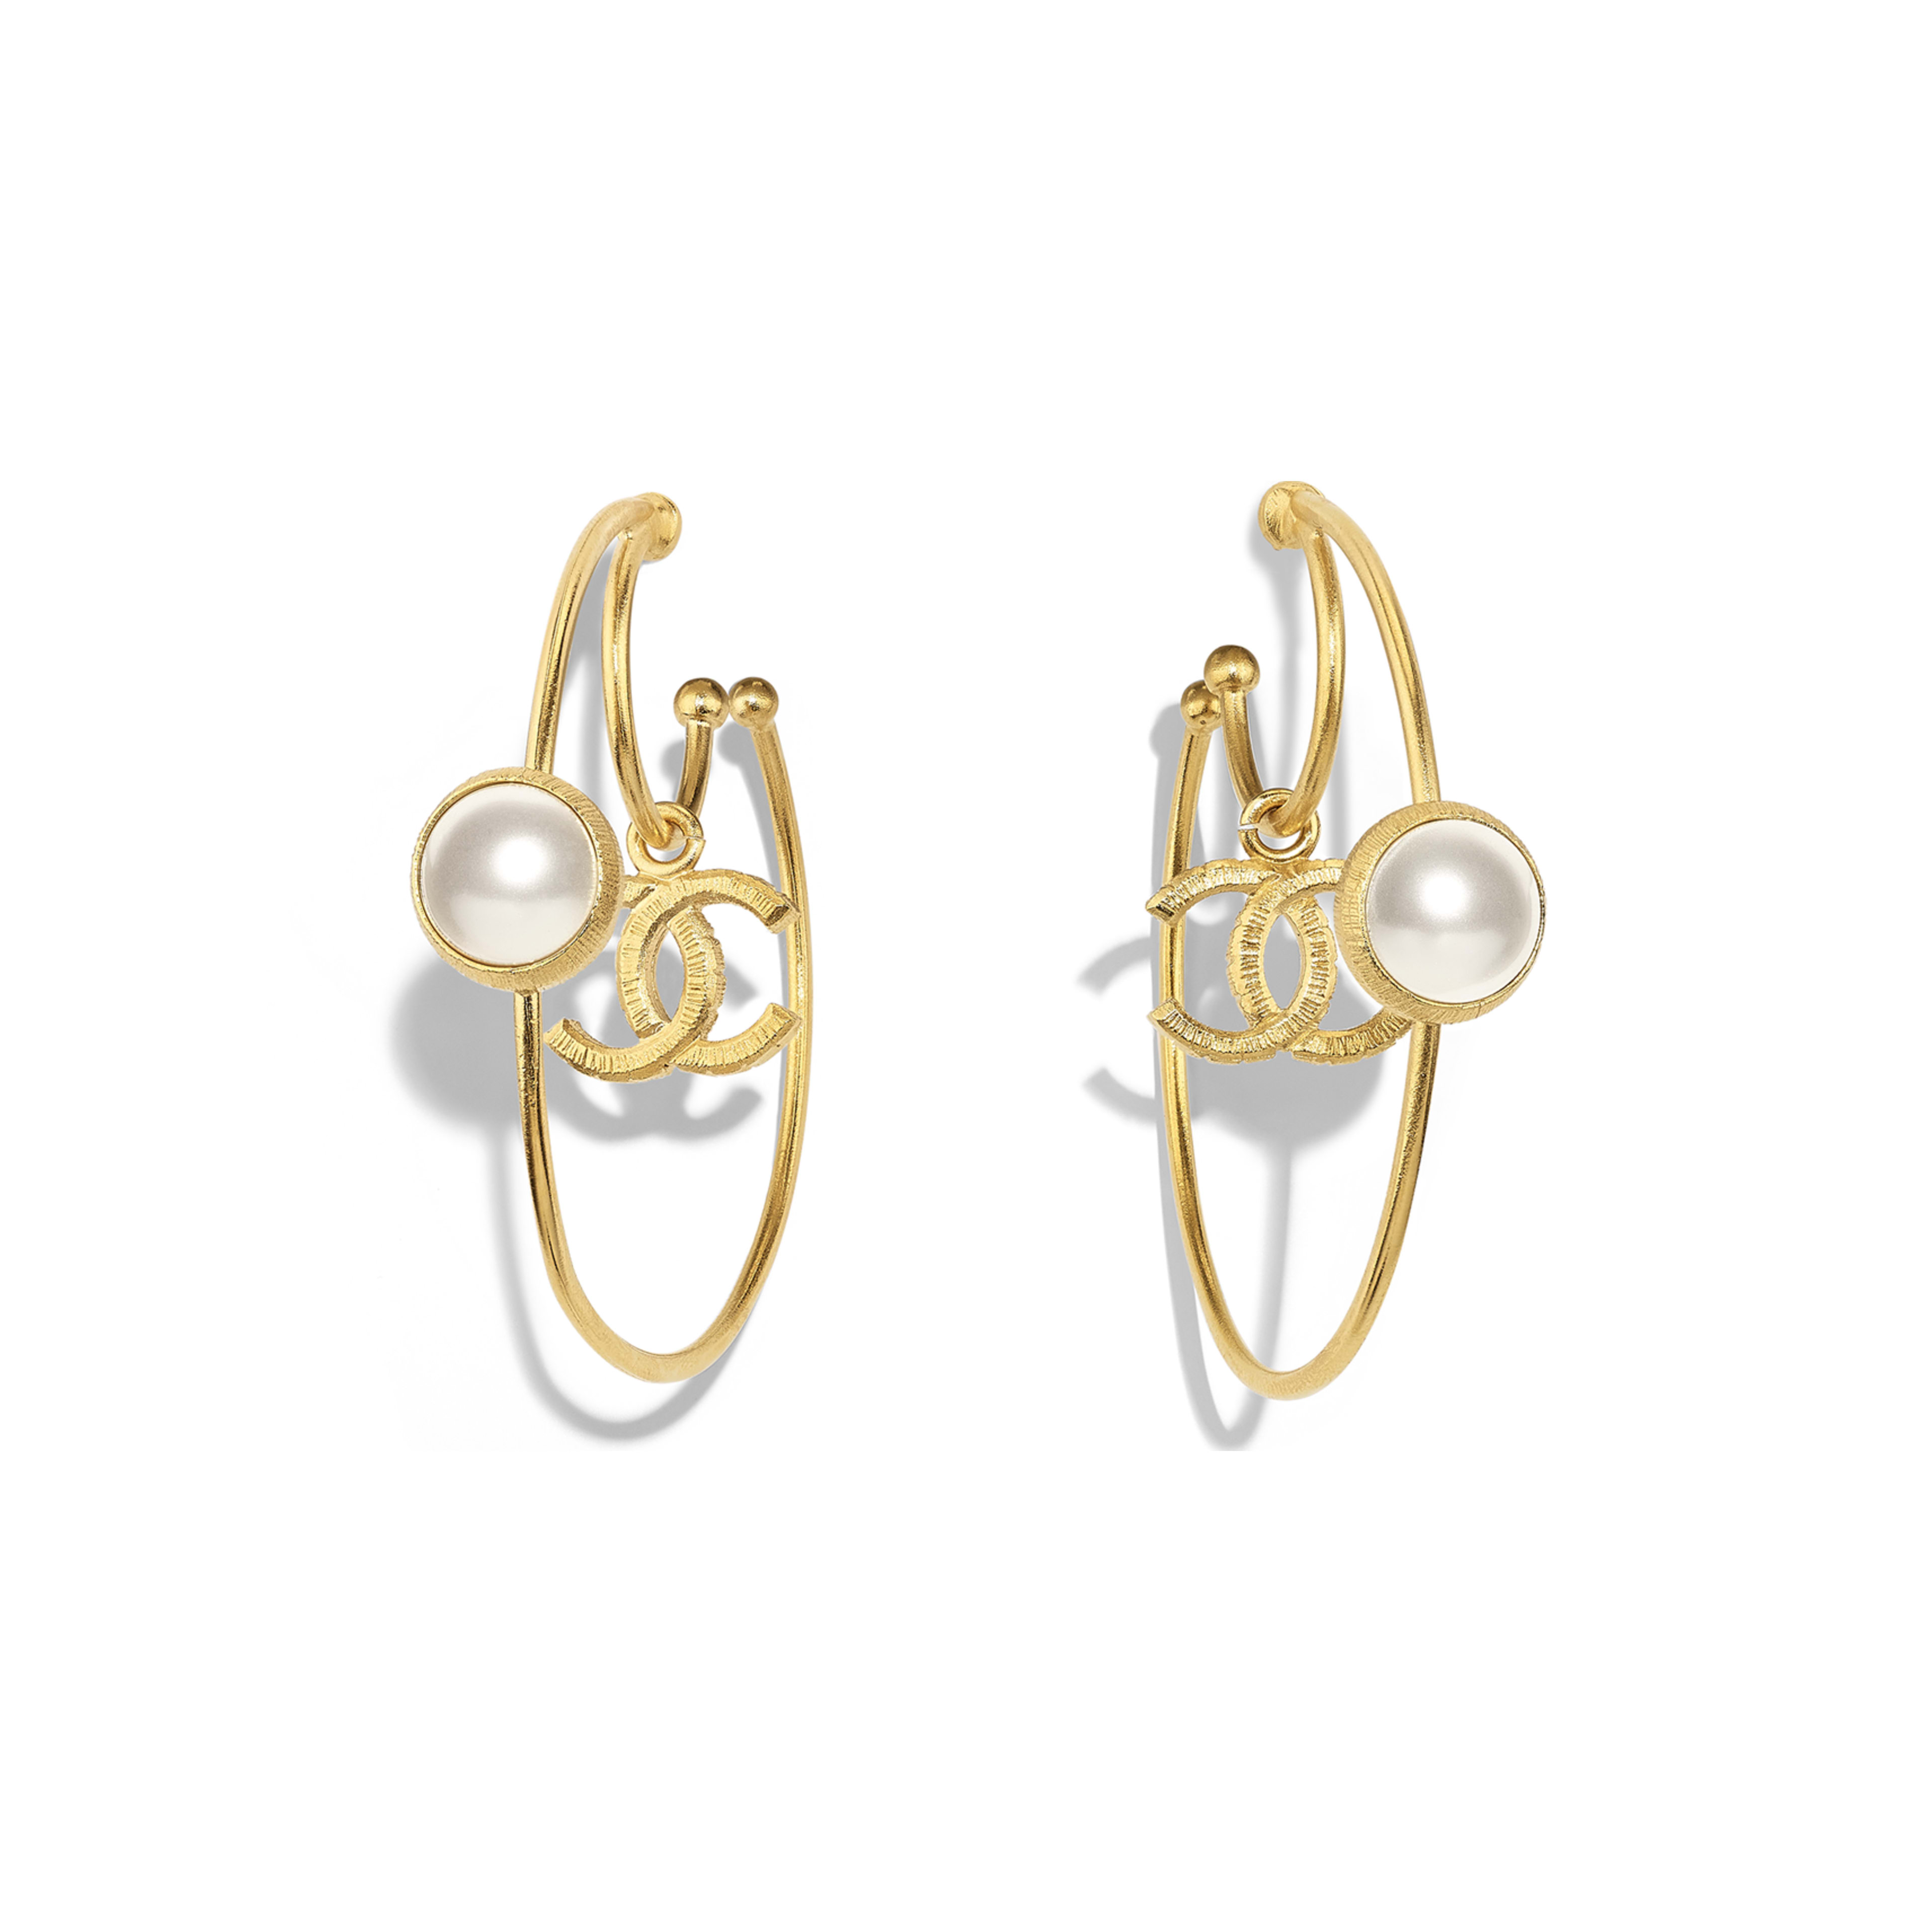 Earrings - Gold & Pearly White - Metal & Glass Pearls - Default view - see full sized version